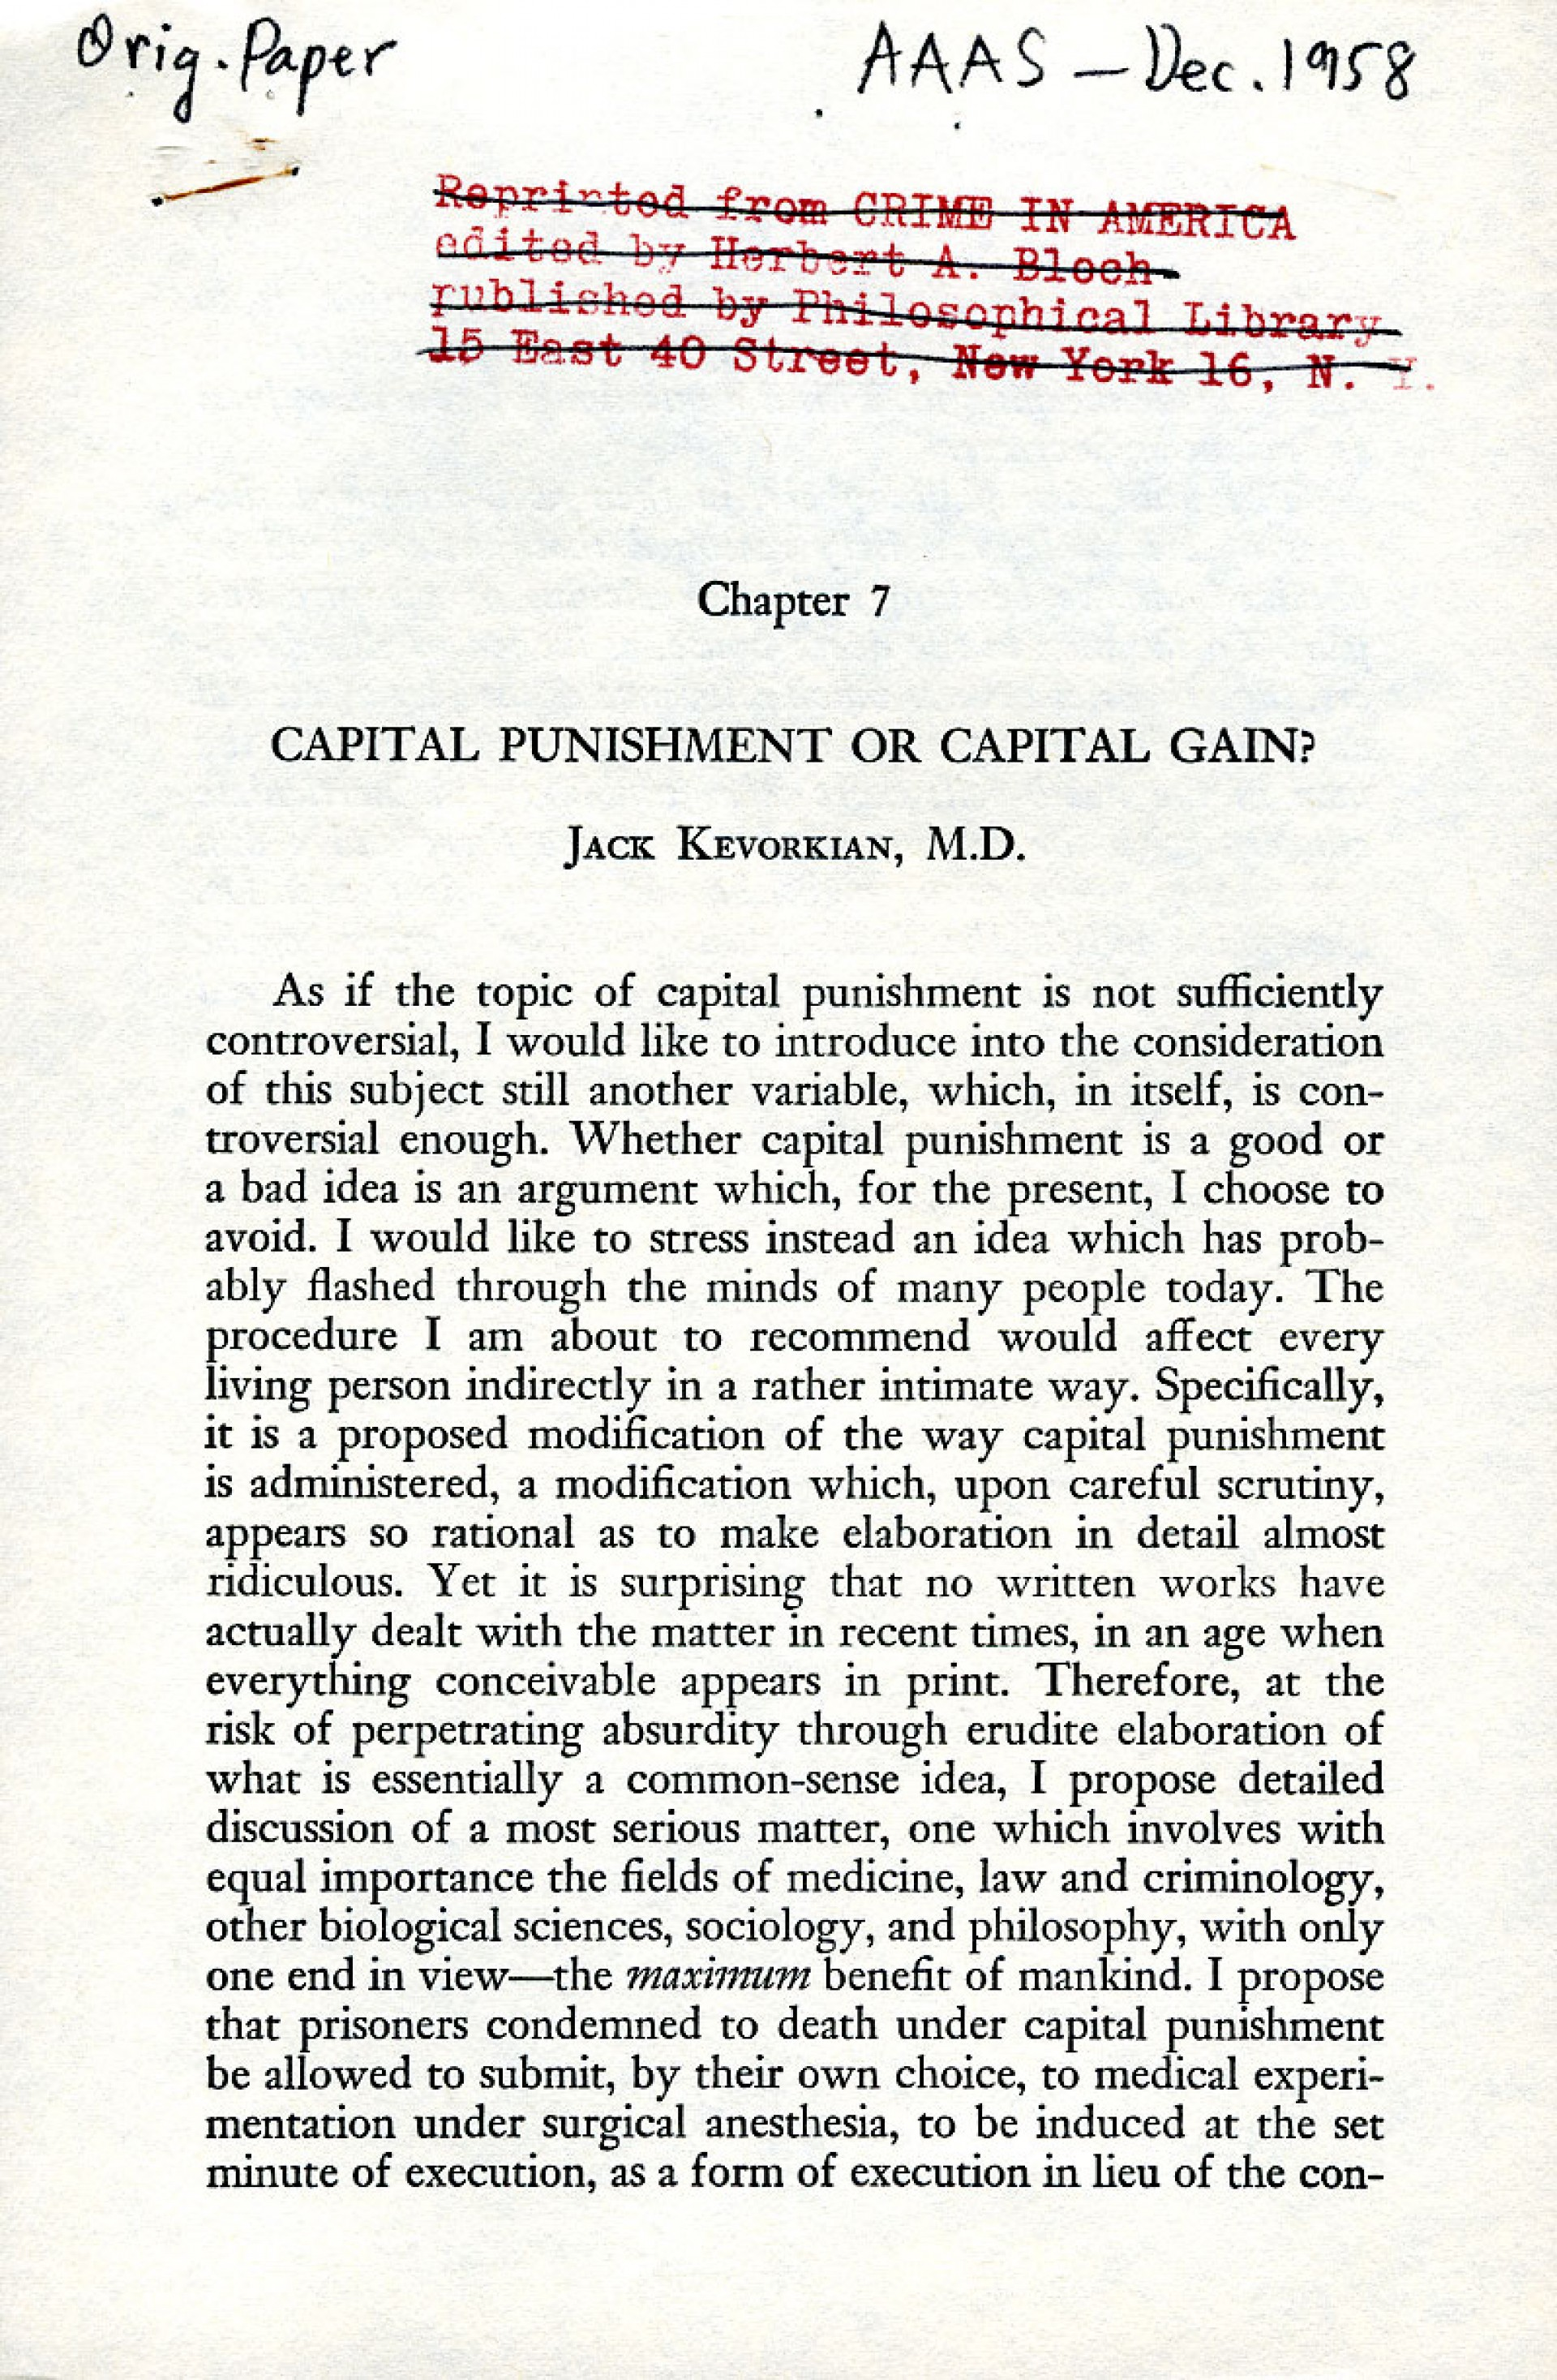 009 Essay Example Capital Punishment Against Death Penalty Shocking Essays Body Conclusion Anti 1920